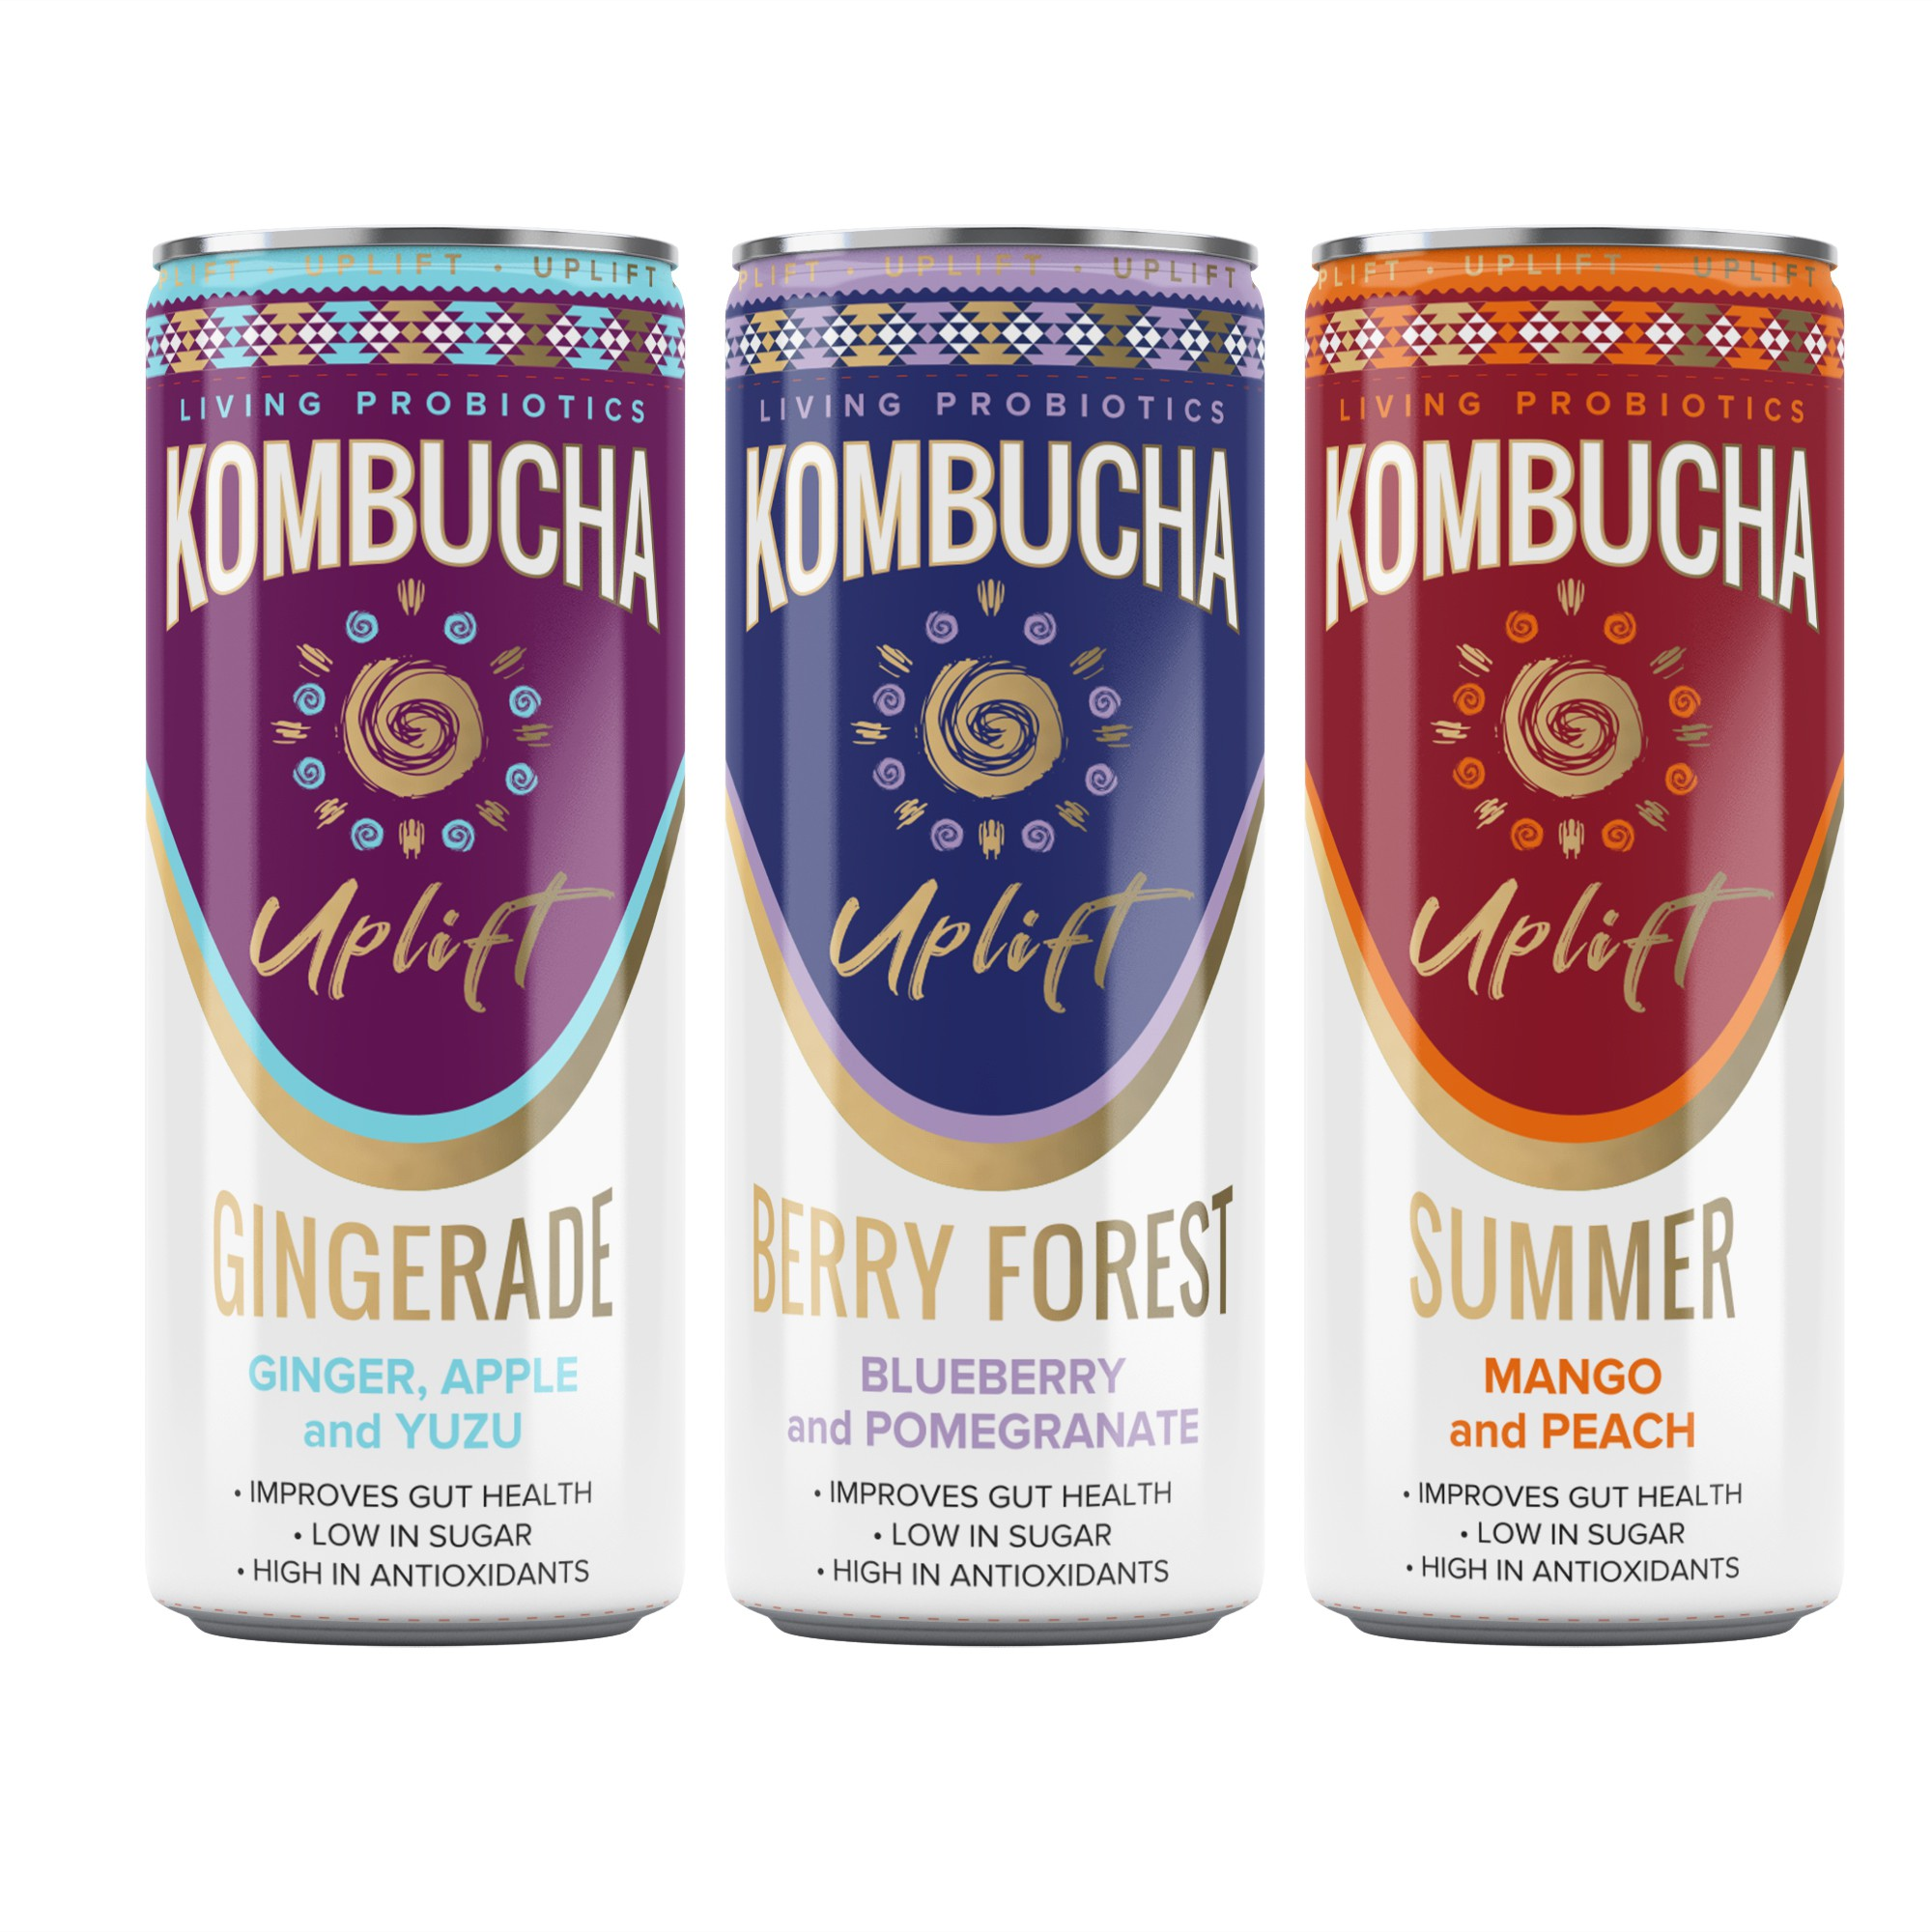 Design a can label for a kombucha brand